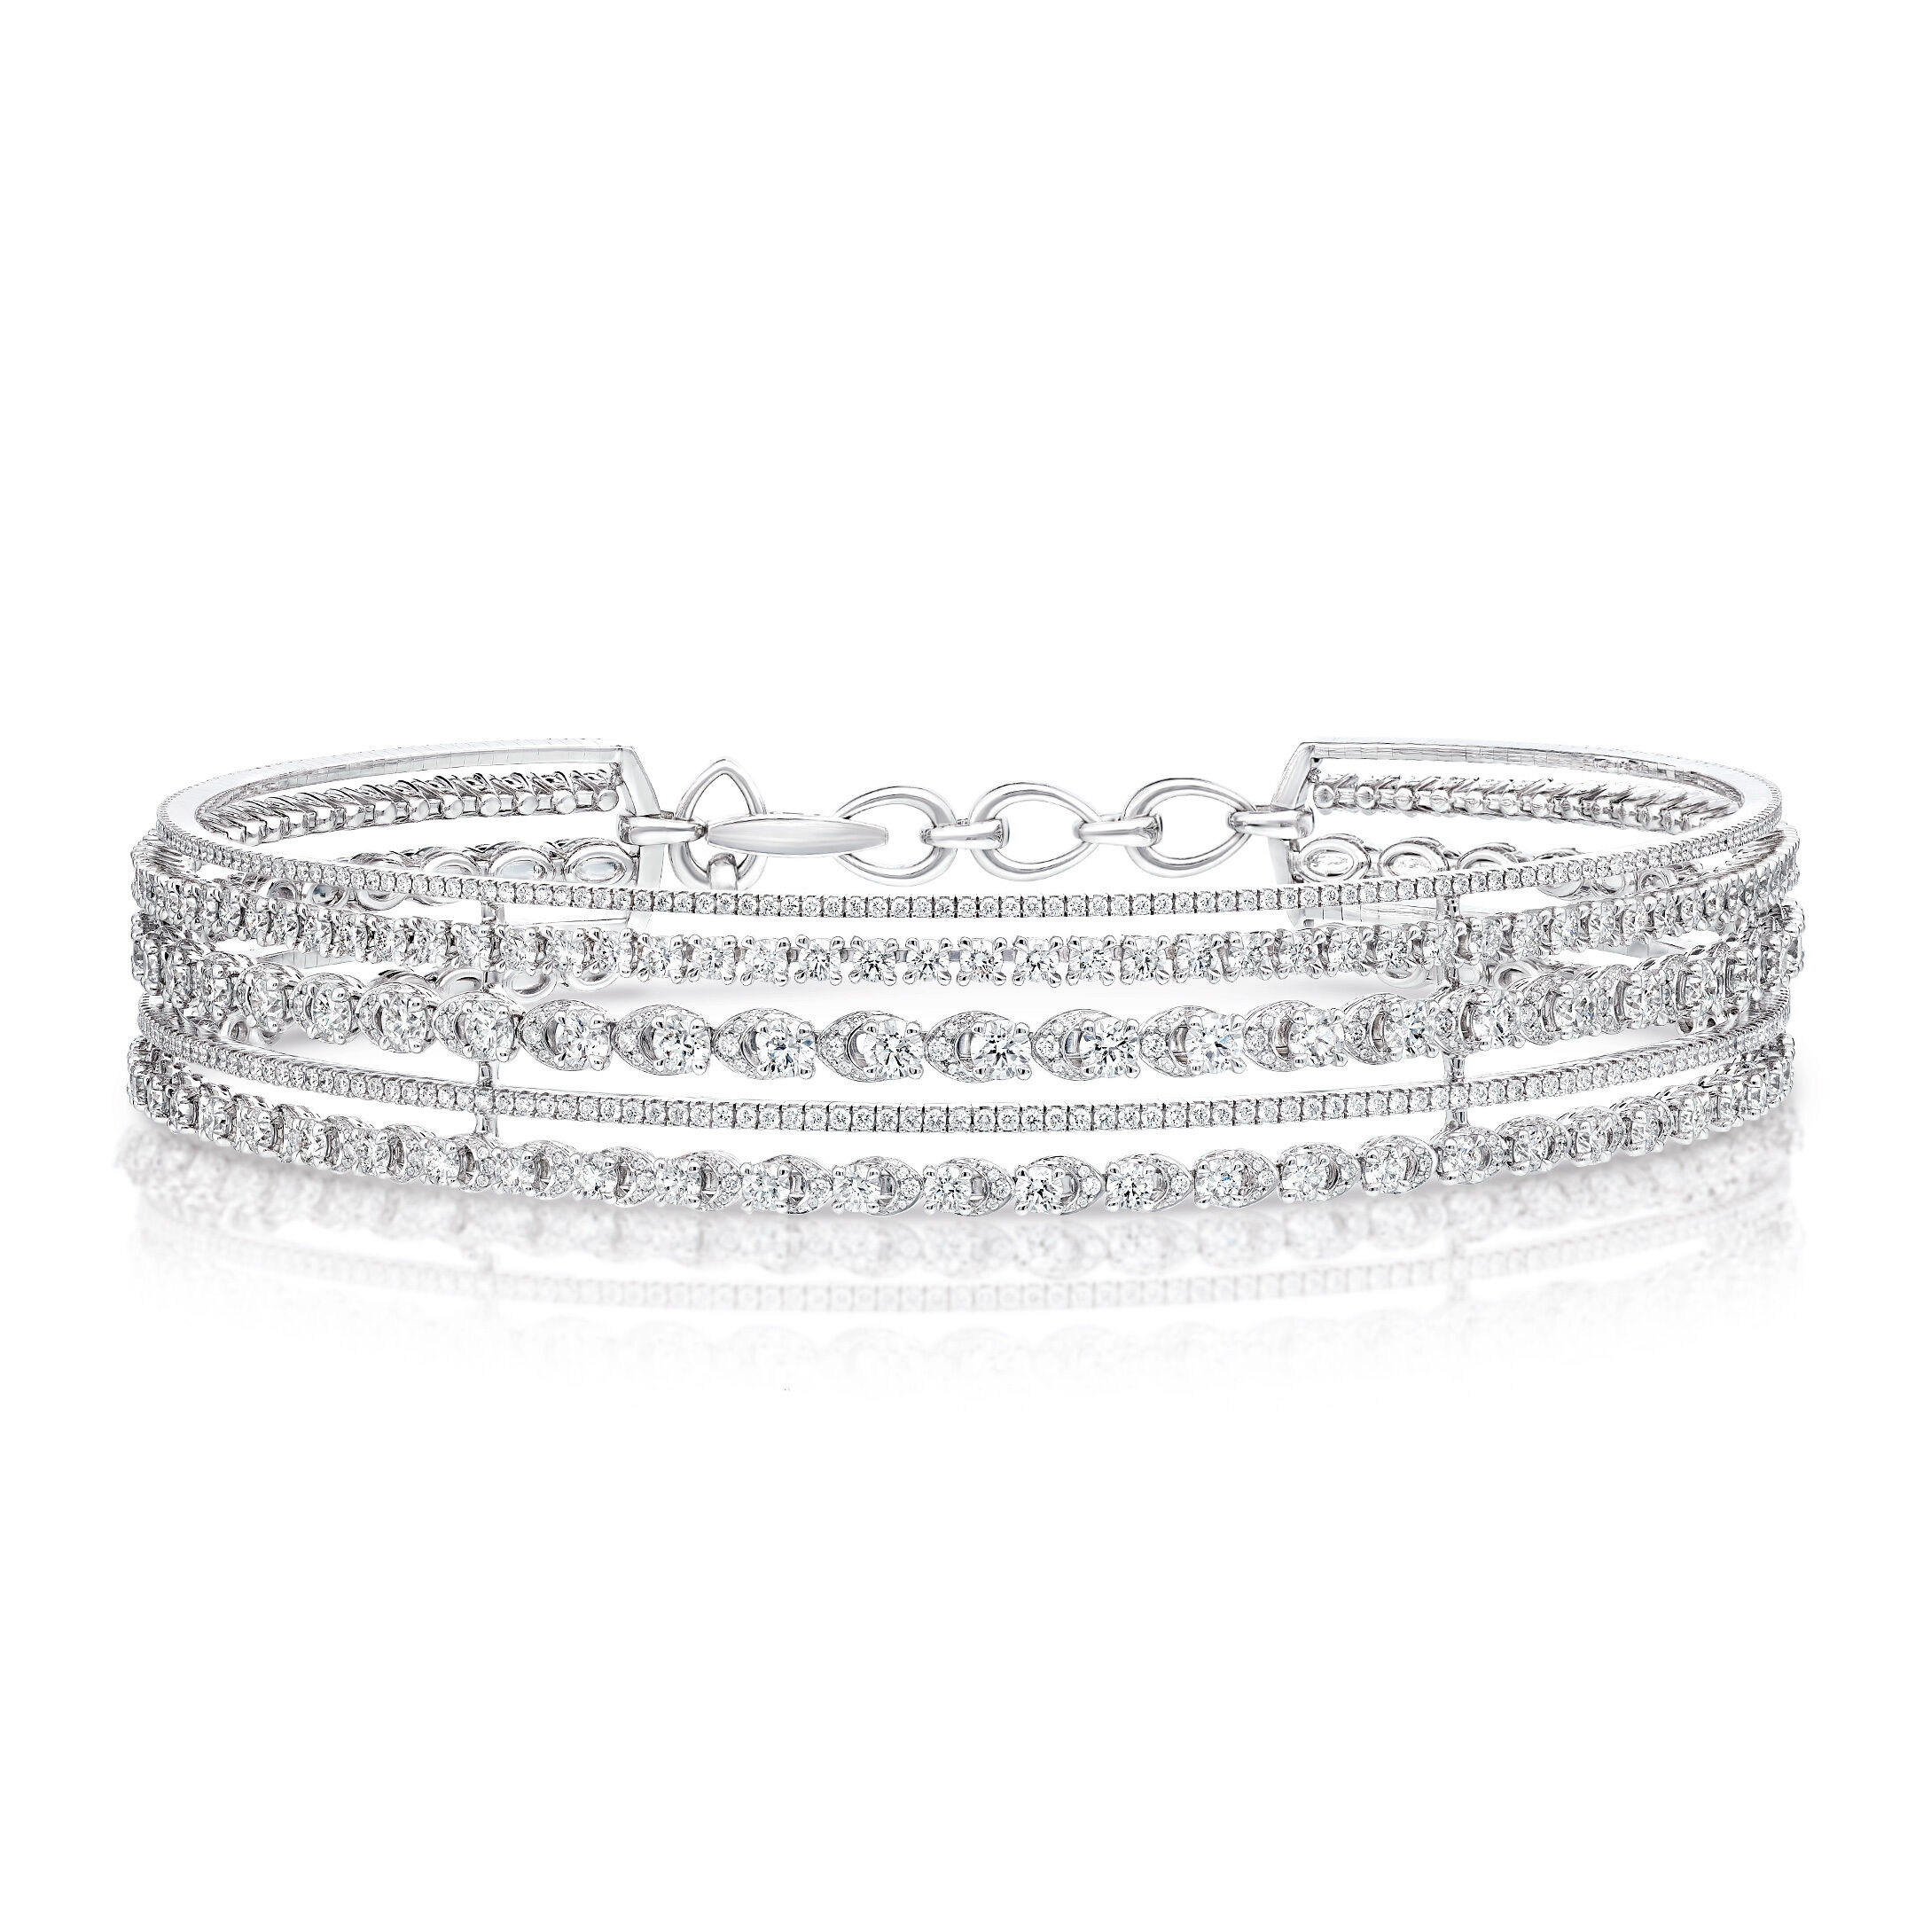 A Graff Gateway Five Row Diamond Necklace from the Tribal collection